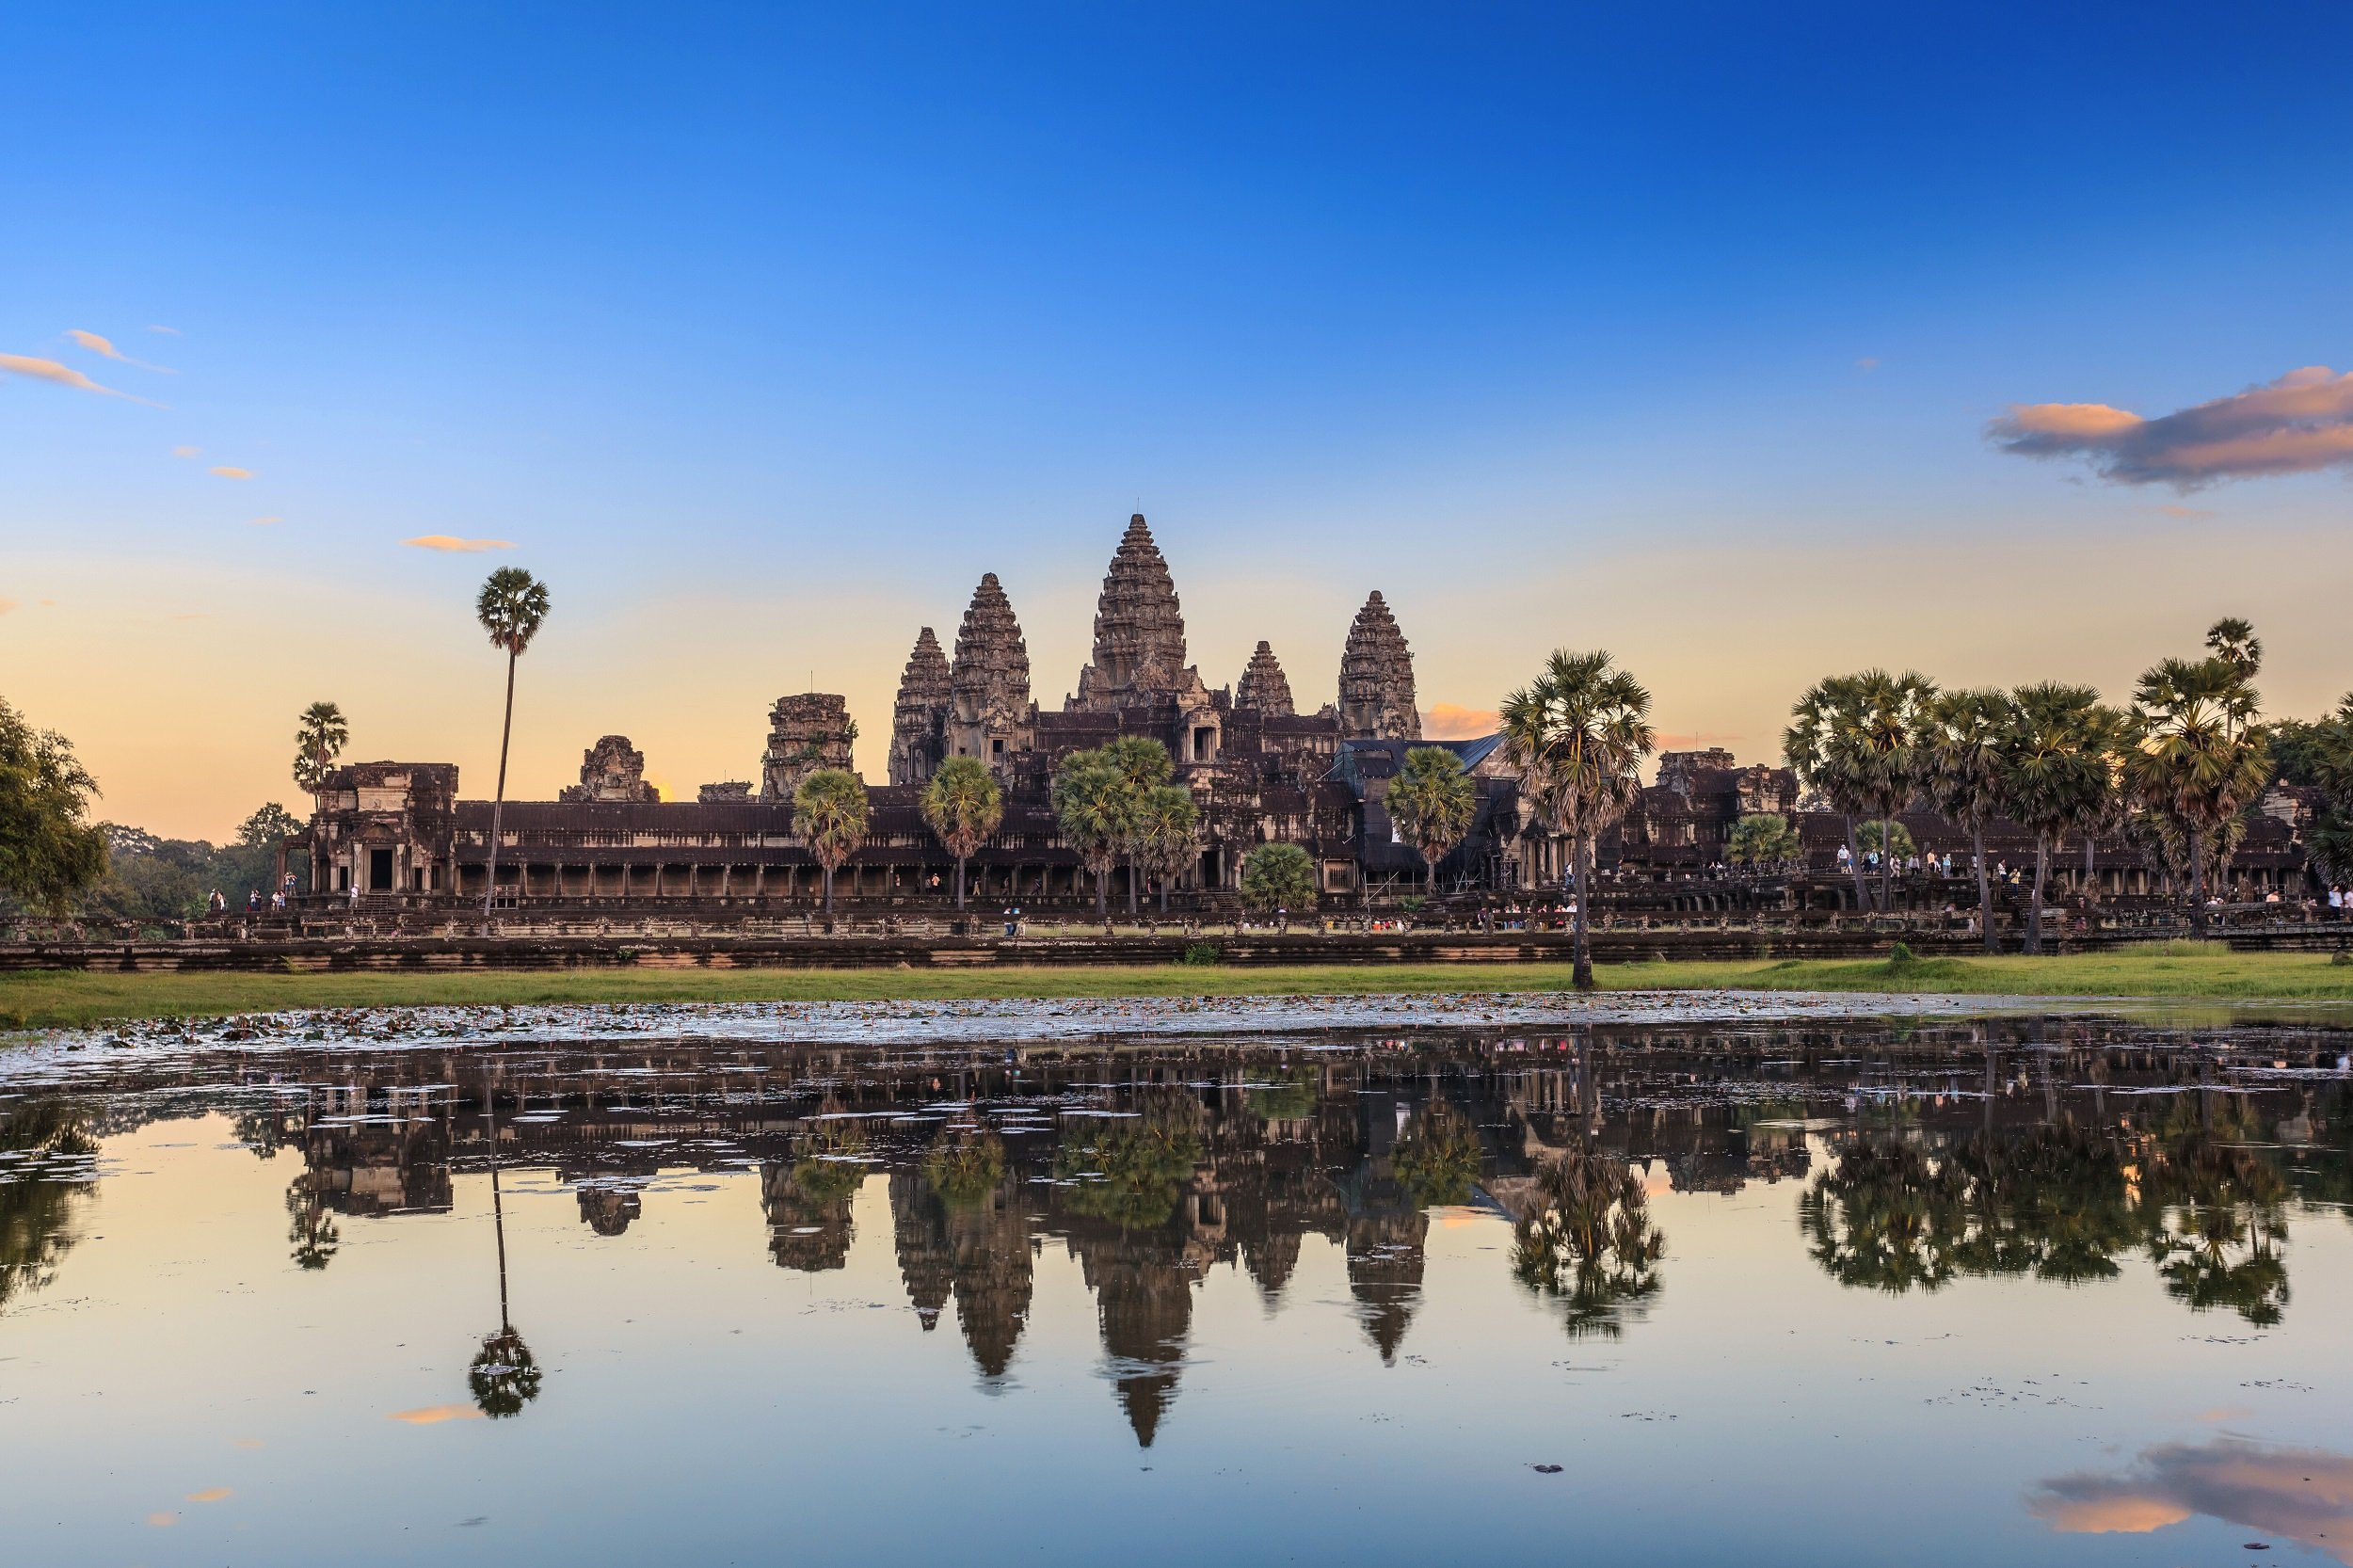 Explore The Famous Temples Of Siem Reap On The Wonders Of Vietnam, Cambodia & Thailand 15 Day Package Tour